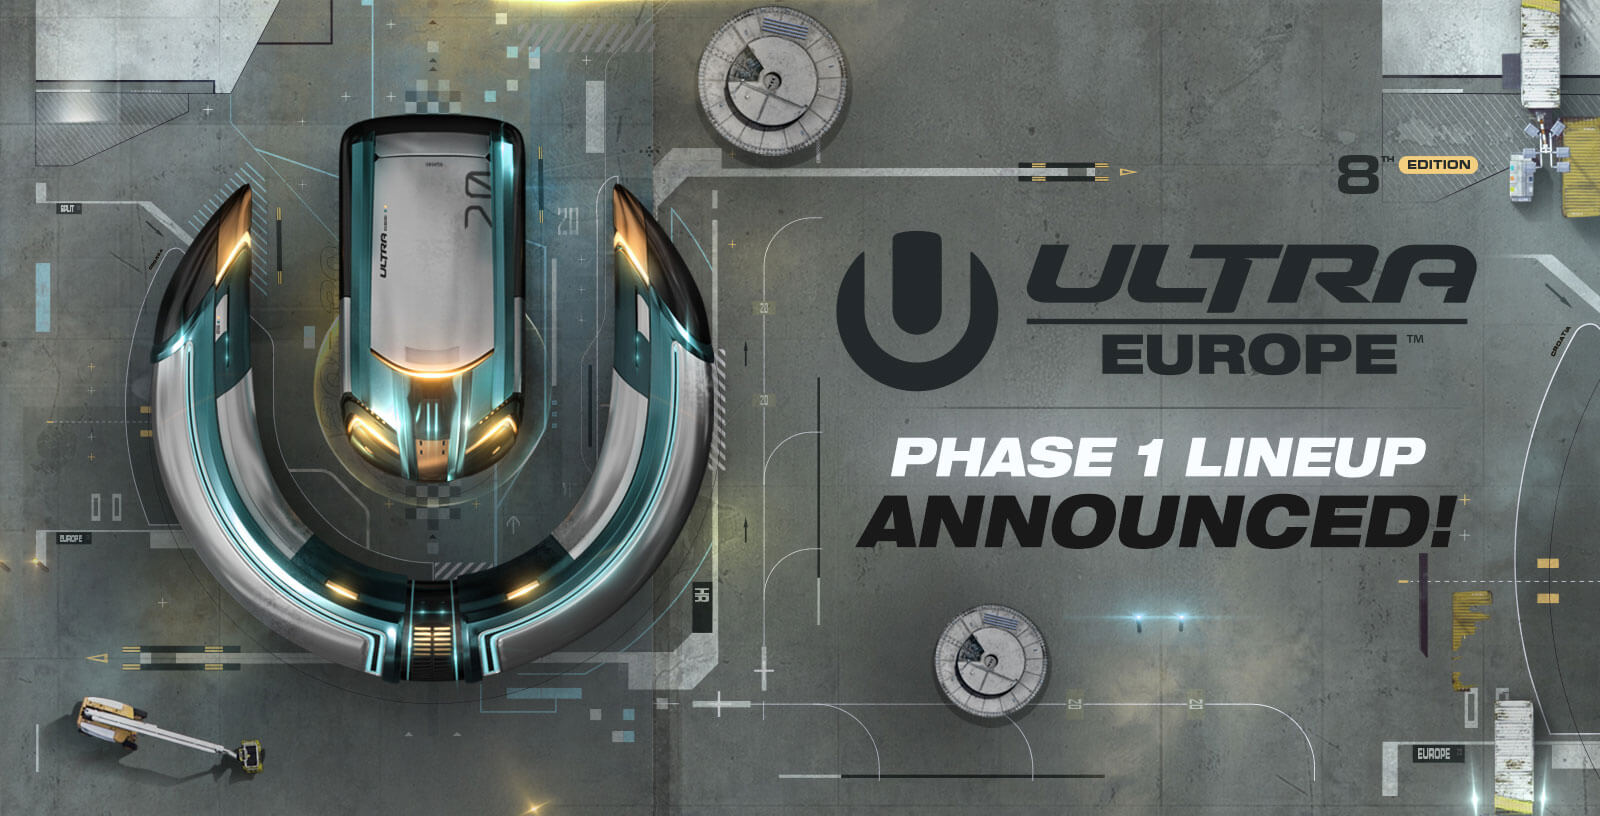 ULTRA Europe Announces Phase 1 Lineup